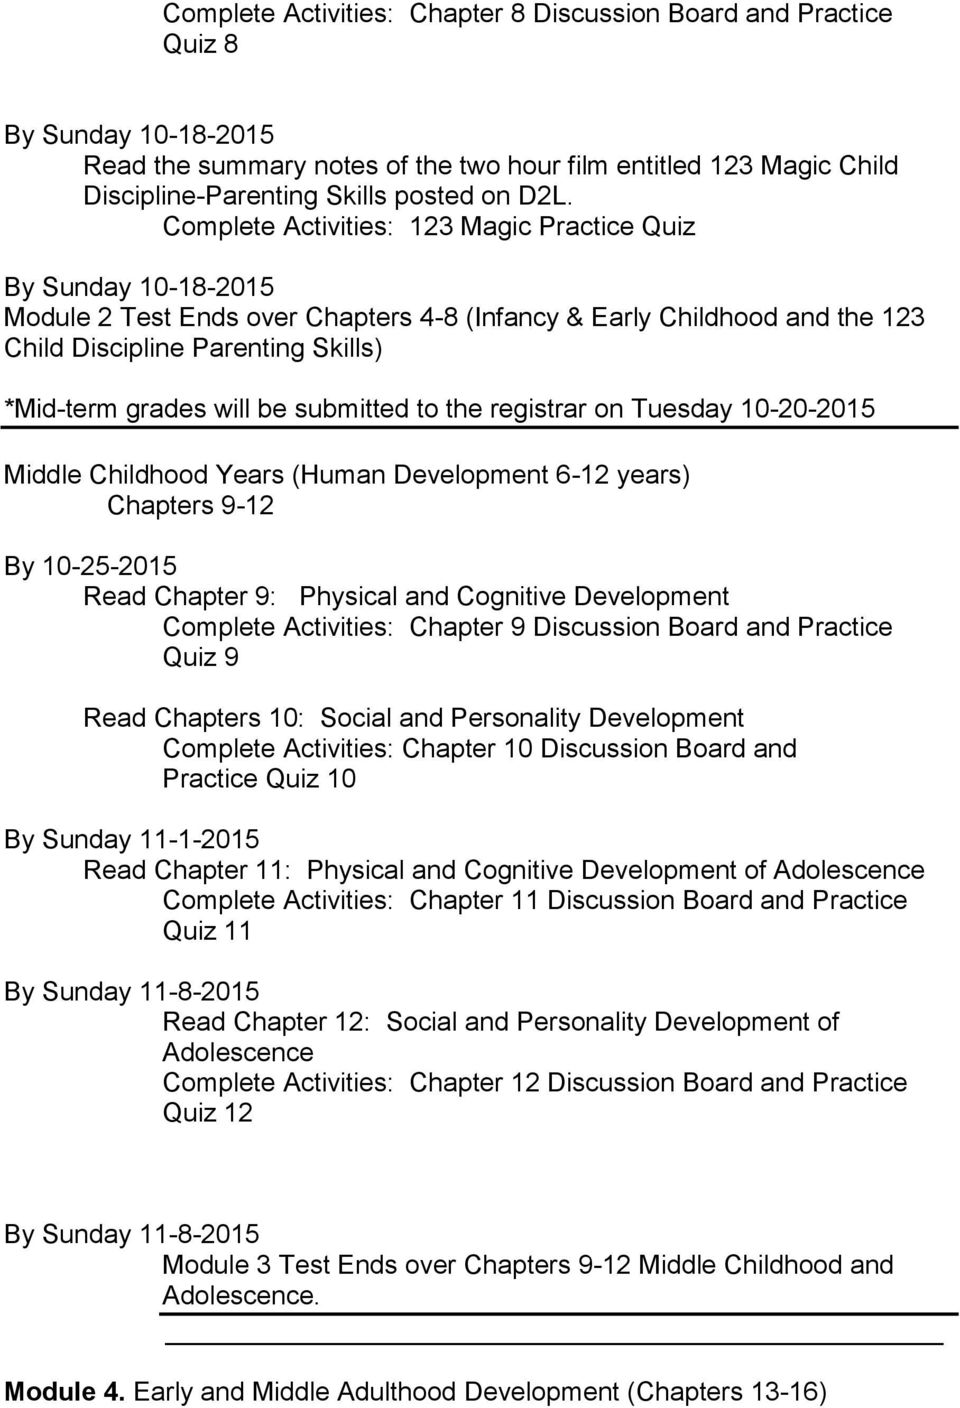 be submitted to the registrar on Tuesday 10-20-2015 Middle Childhood Years (Human Development 6-12 years) Chapters 9-12 By 10-25-2015 Read Chapter 9: Physical and Cognitive Development Complete